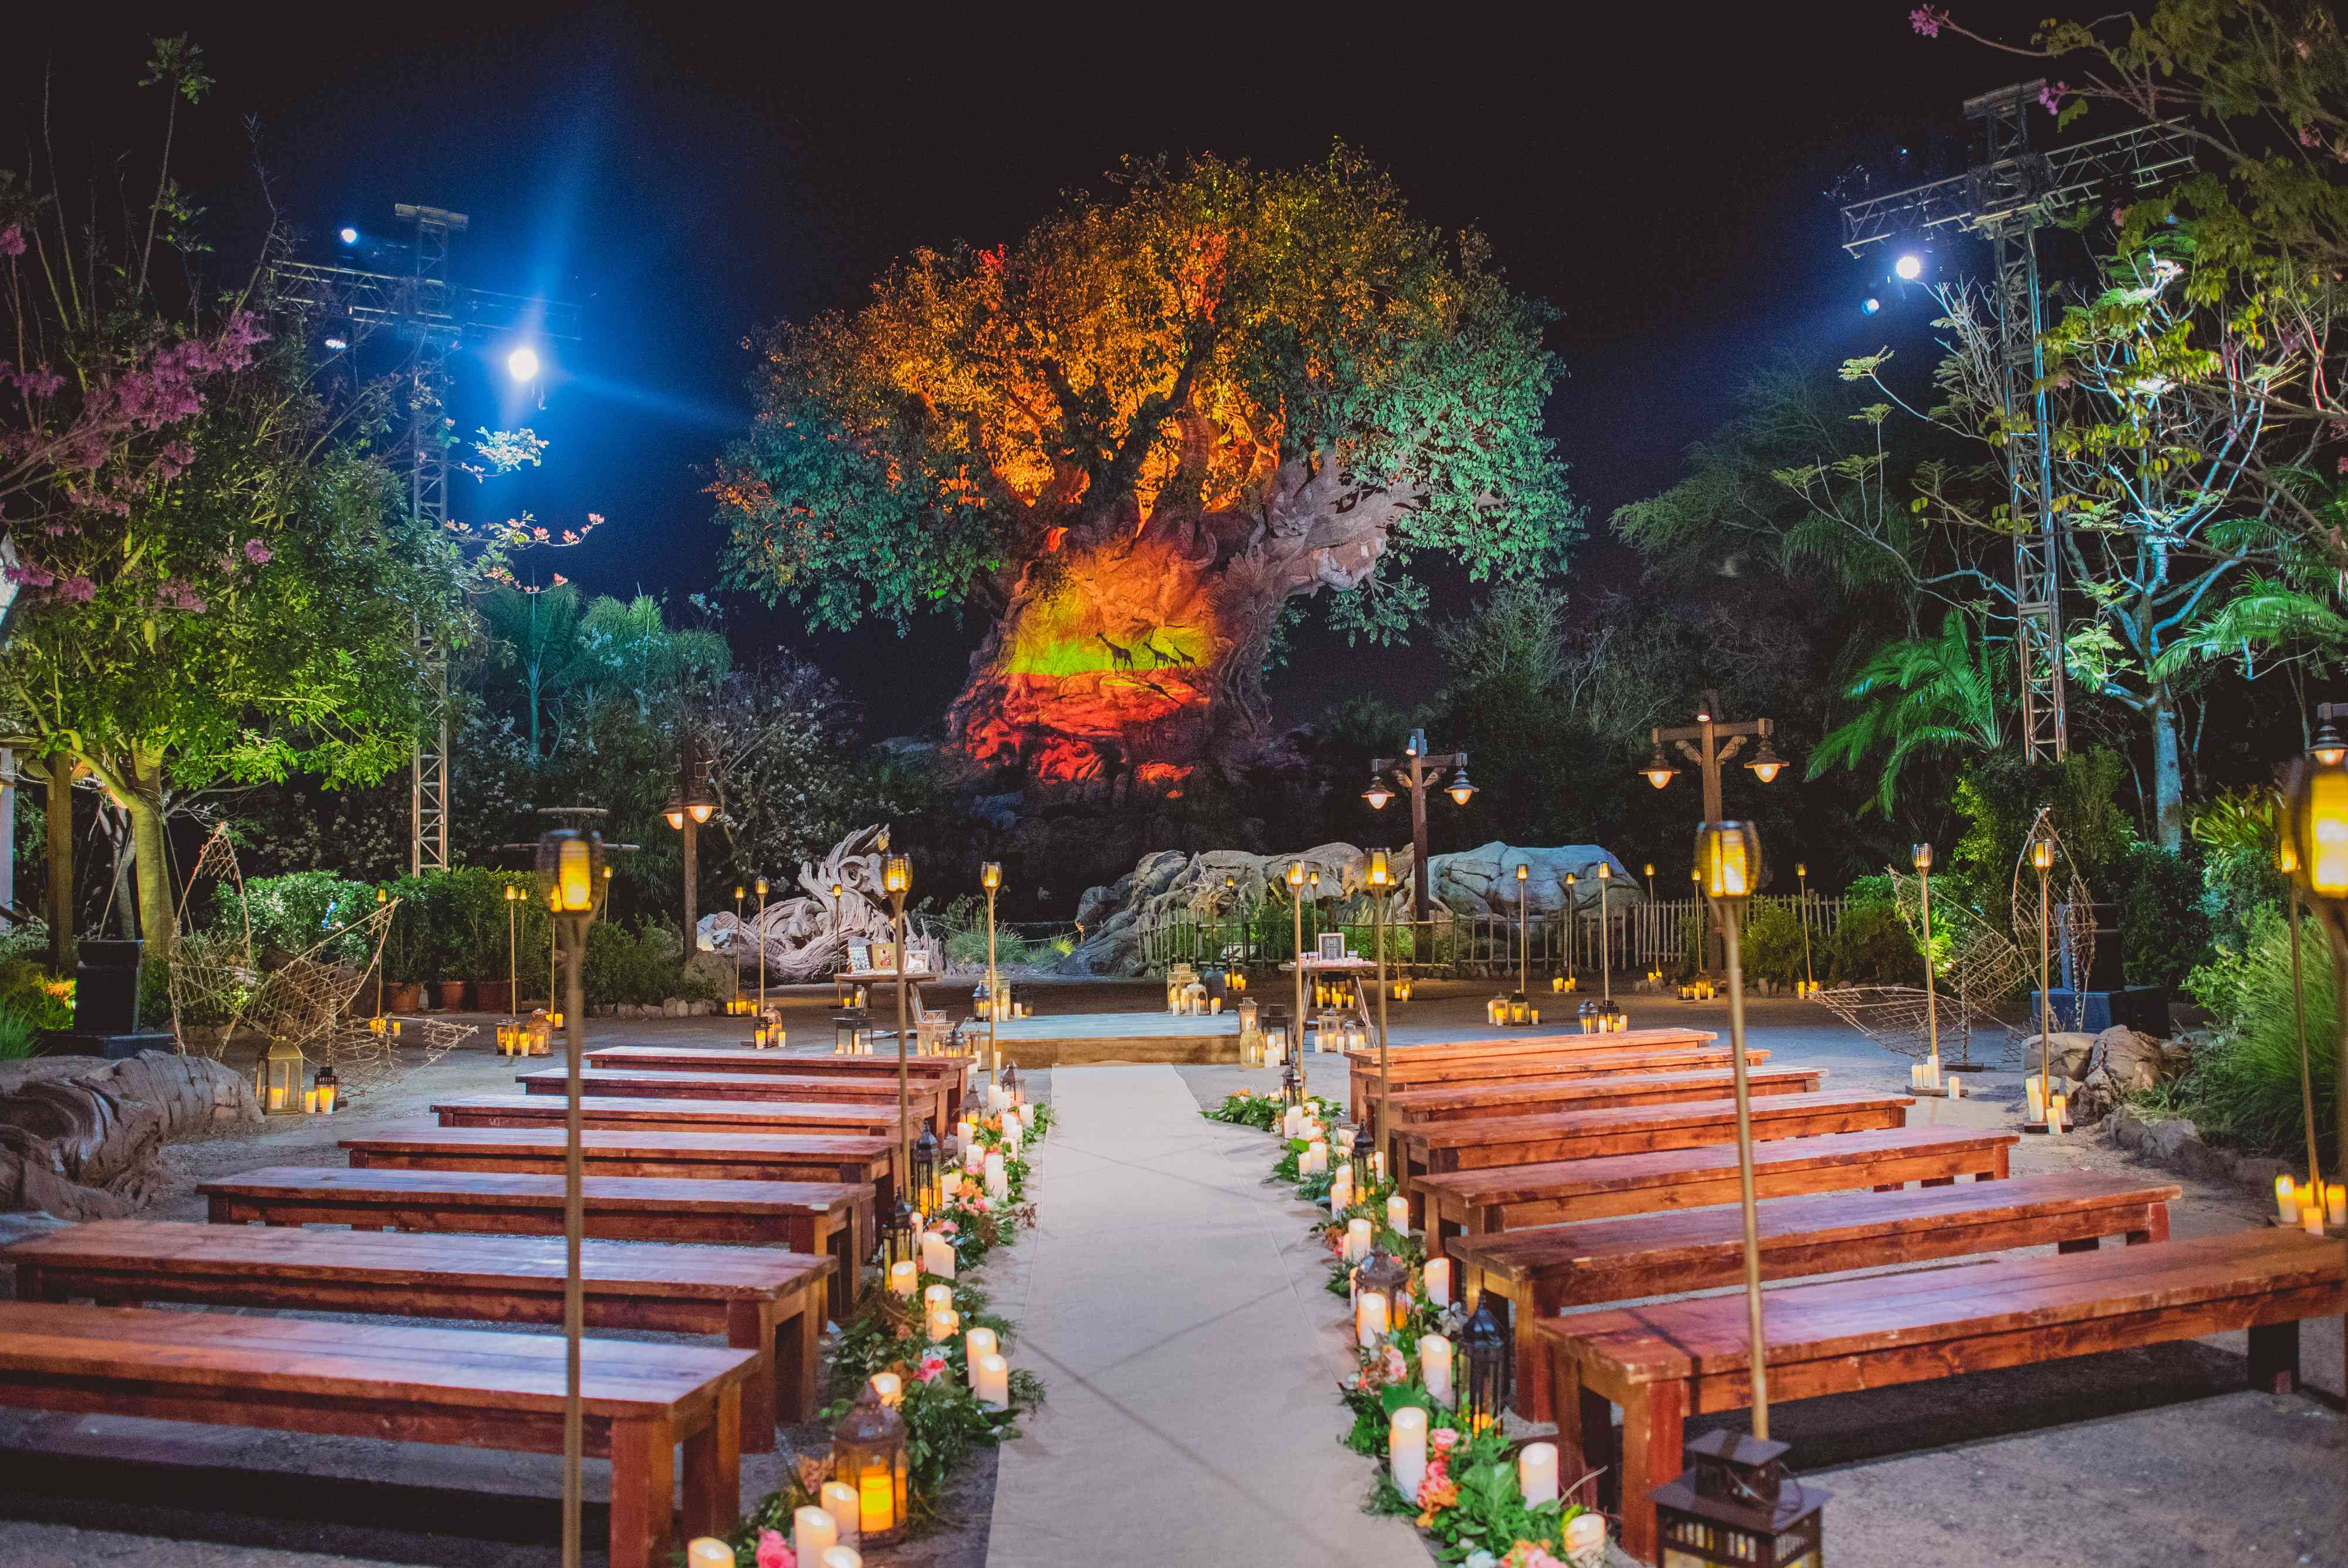 Benches set up for a Disney wedding